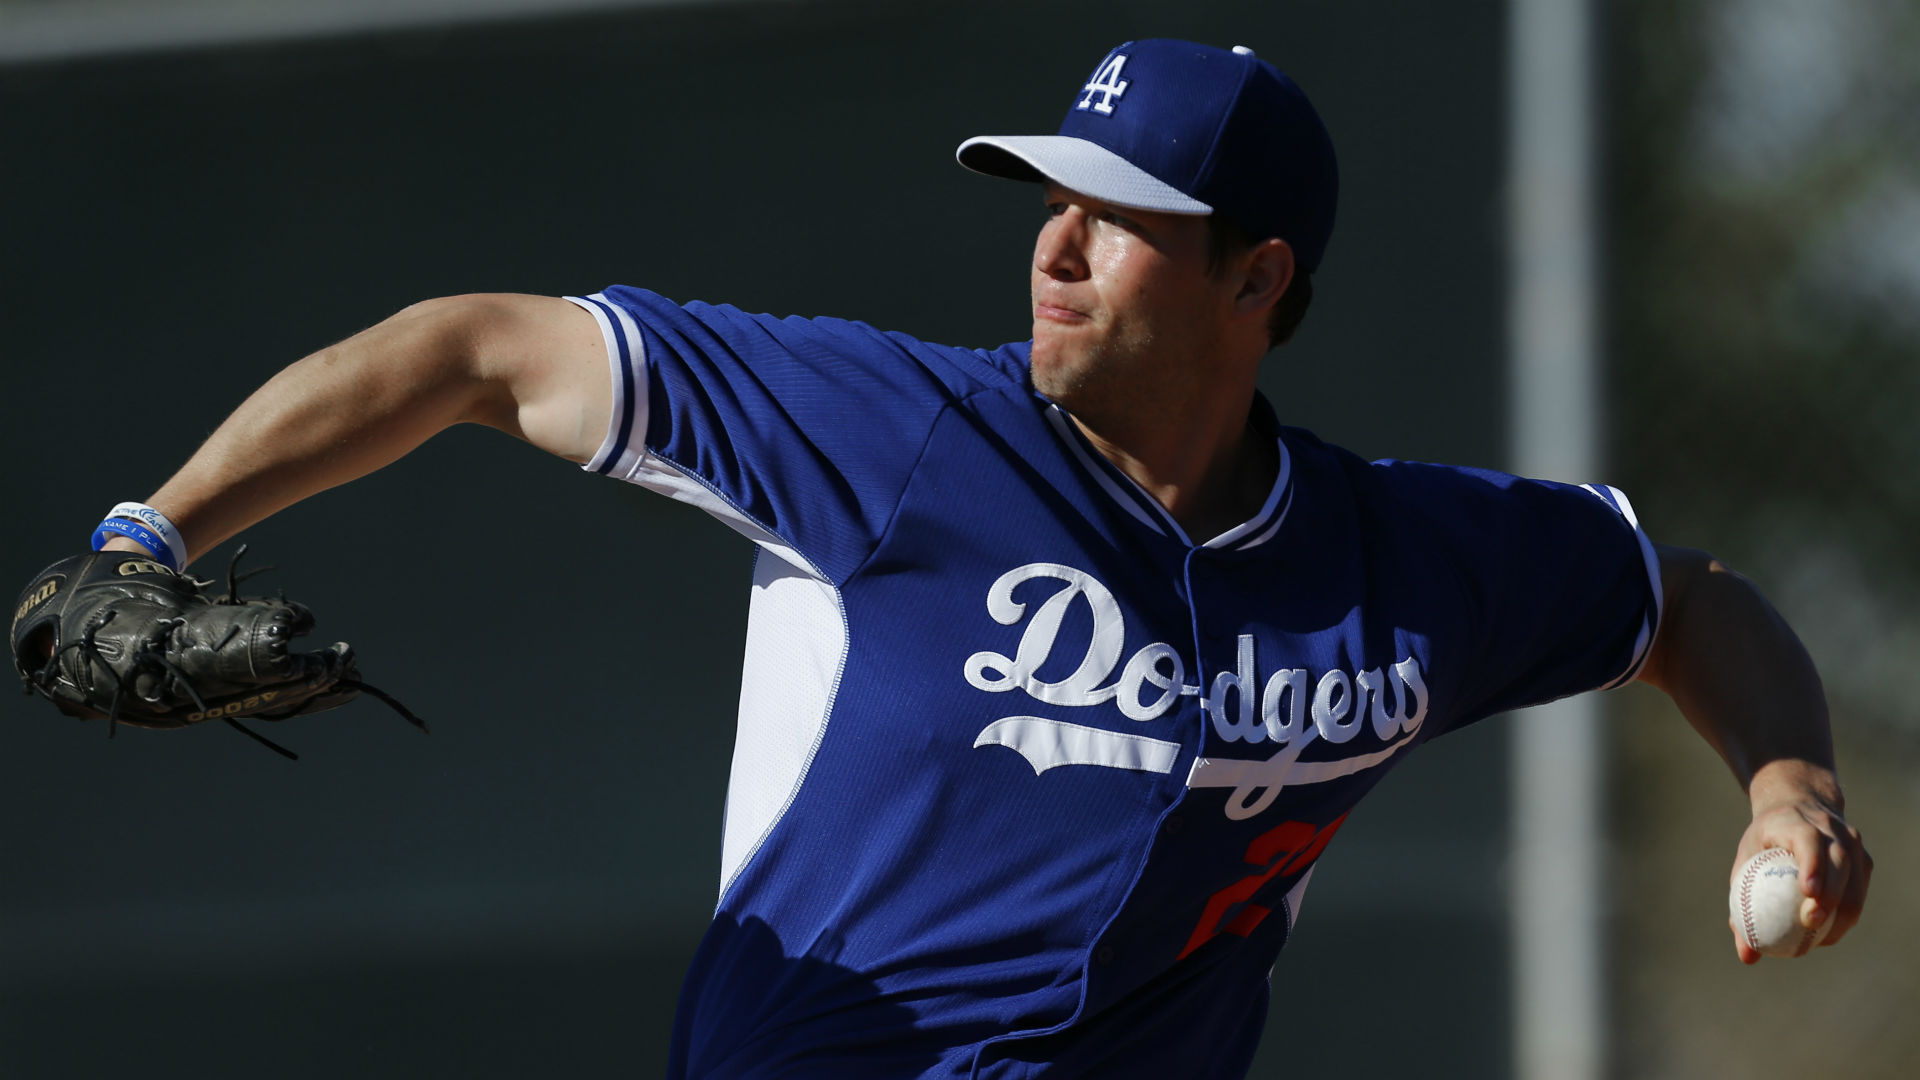 SN Experts' Draft recap: The risks, rewards of picking Clayton Kershaw at No. 5